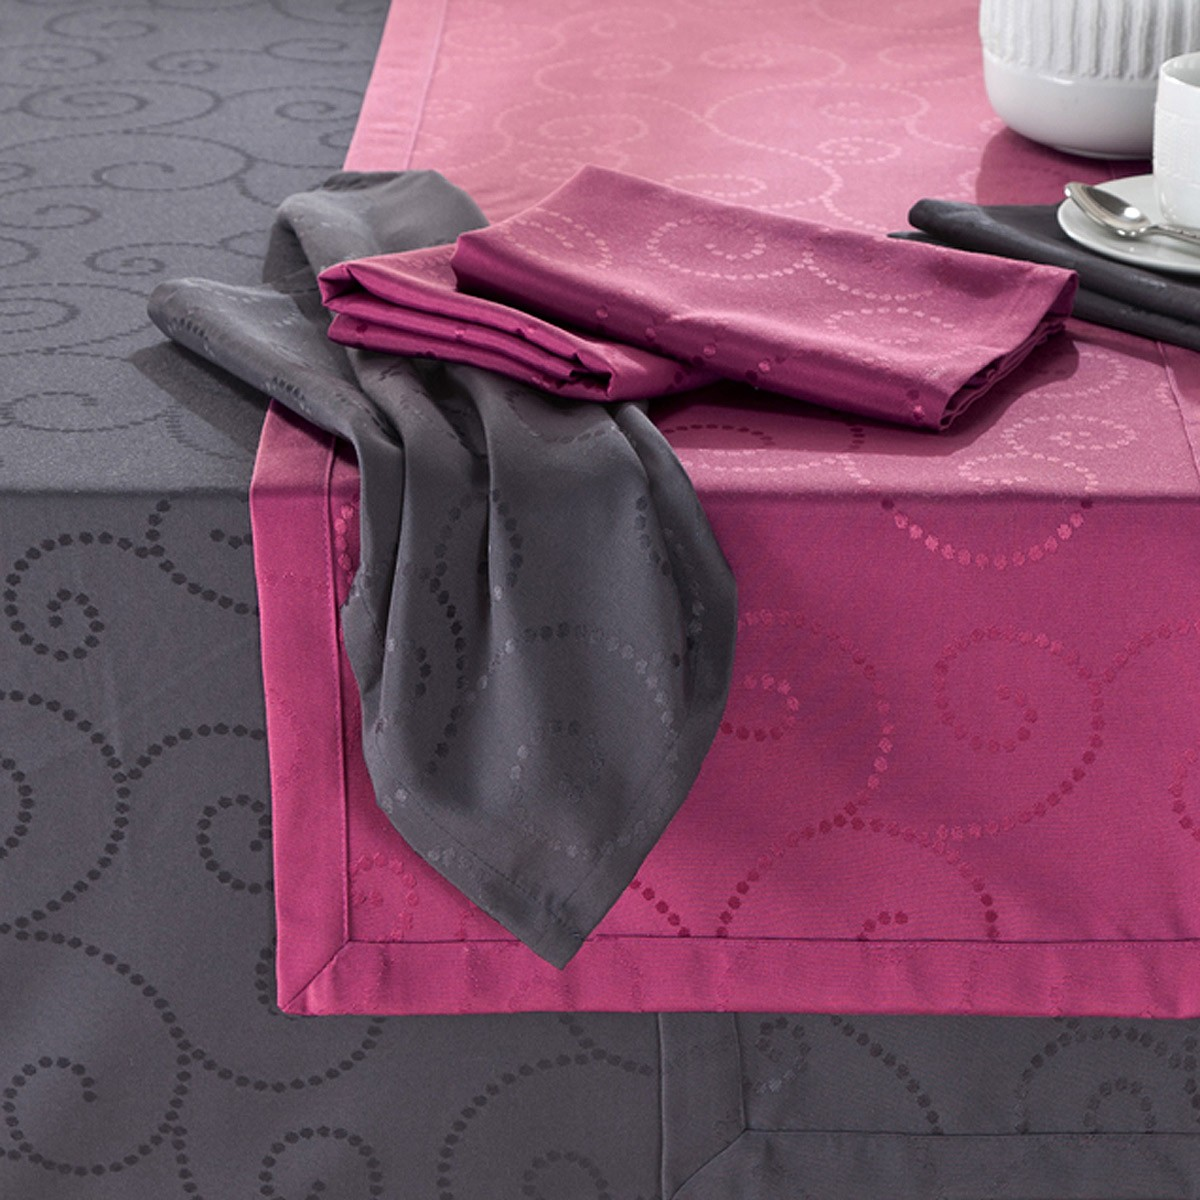 Serviette Table Serviette Table Enchantement Tradition Des Vosges